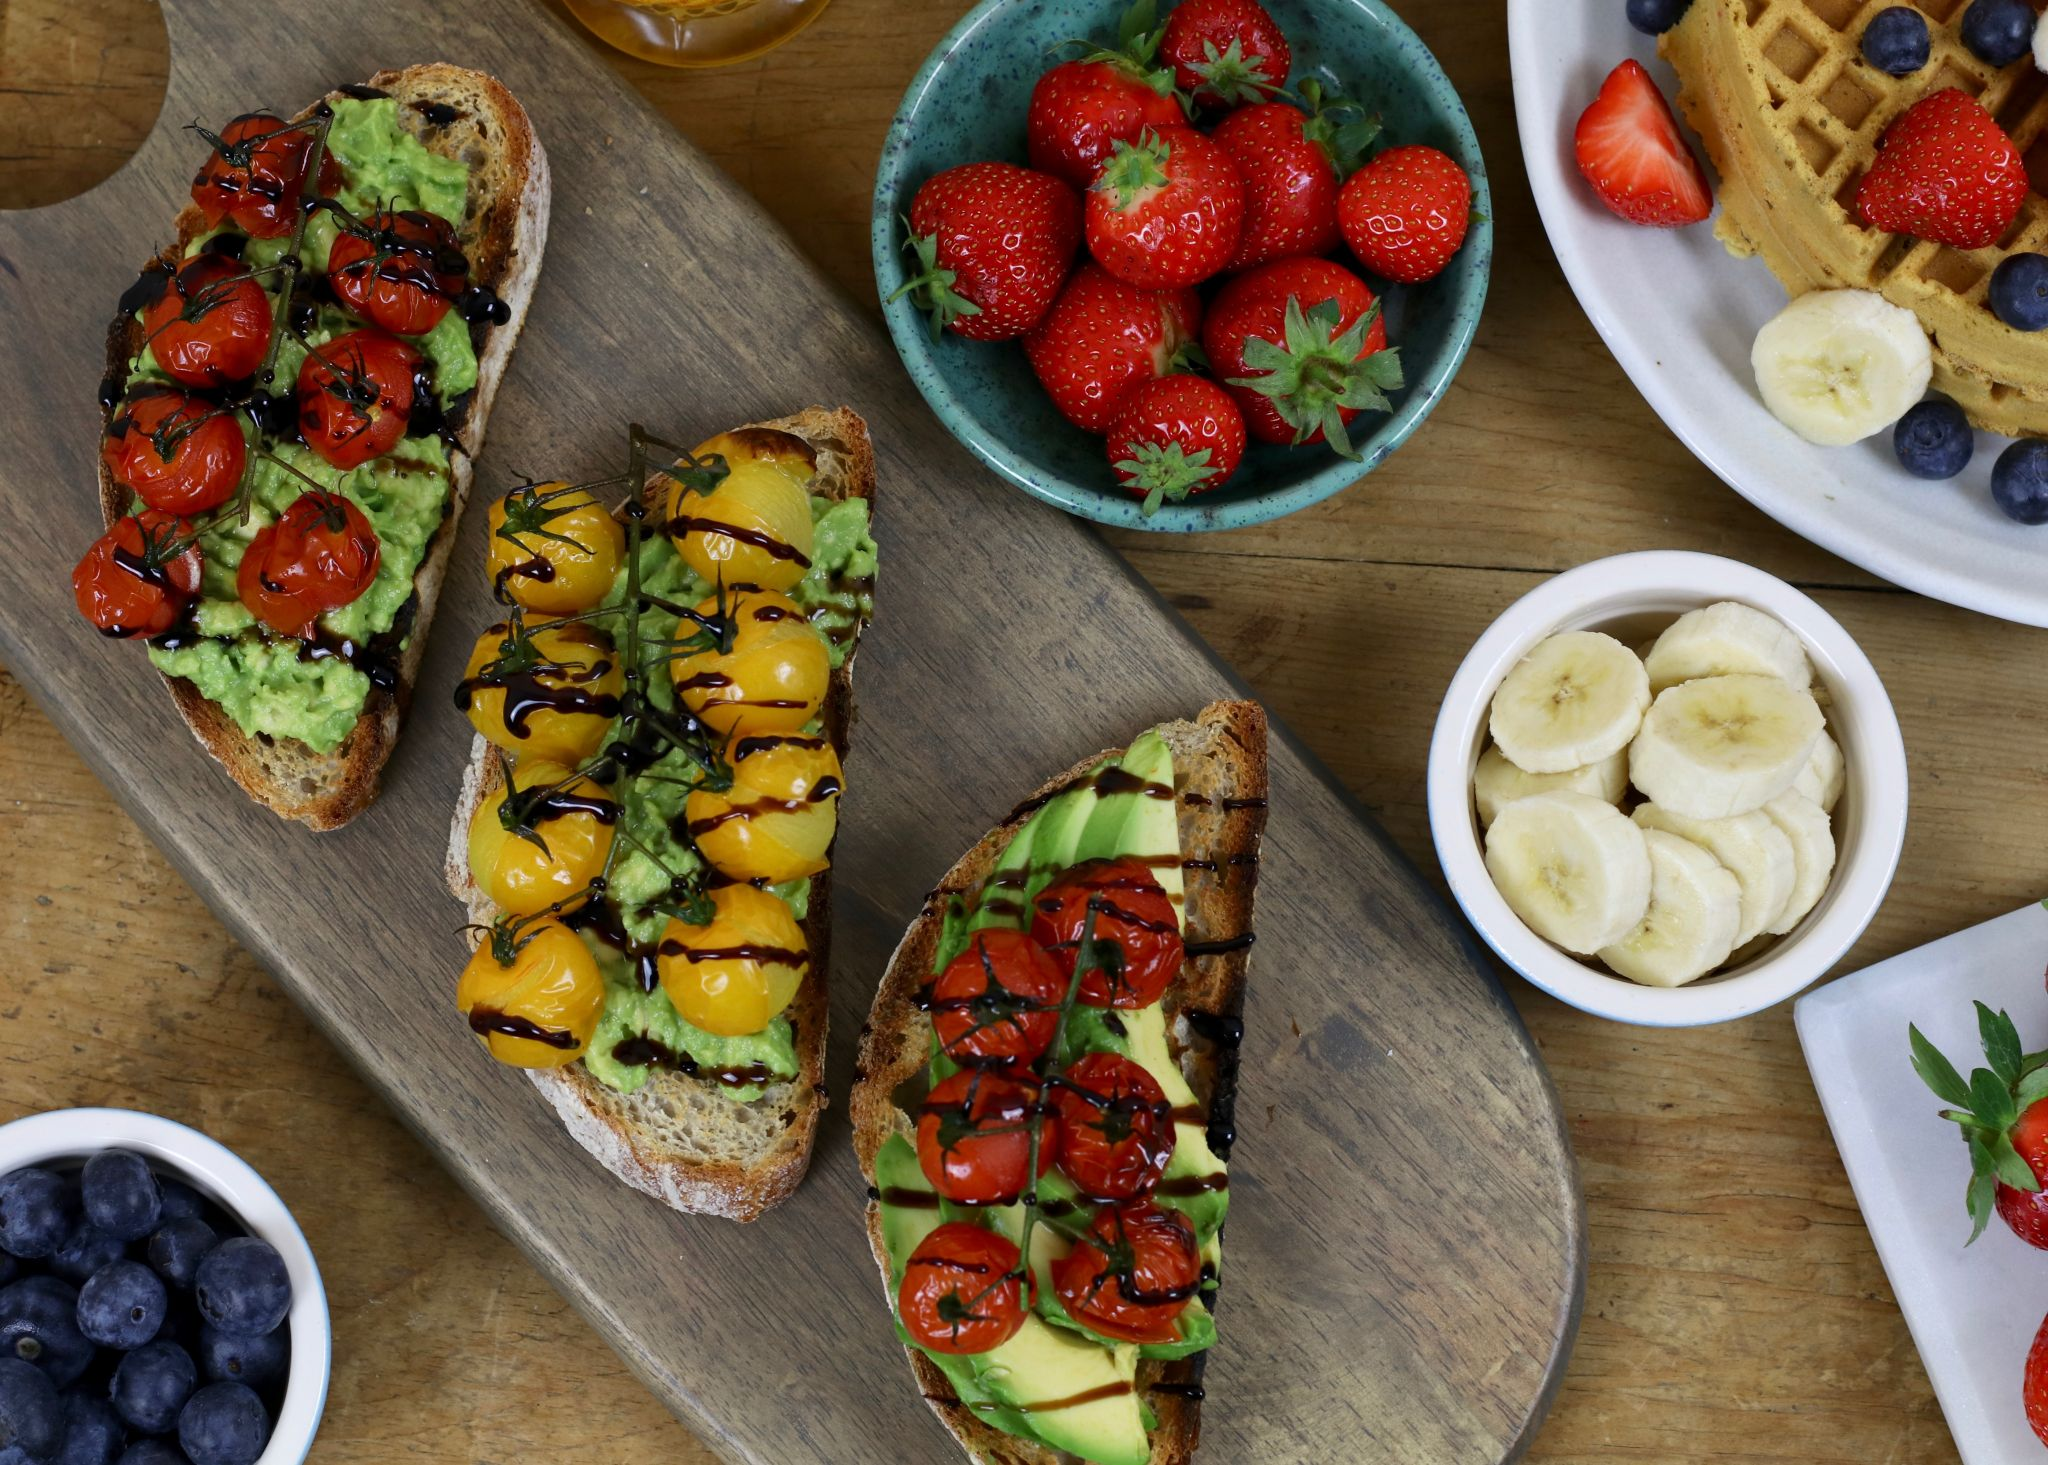 Brunch club at home - avocado toast